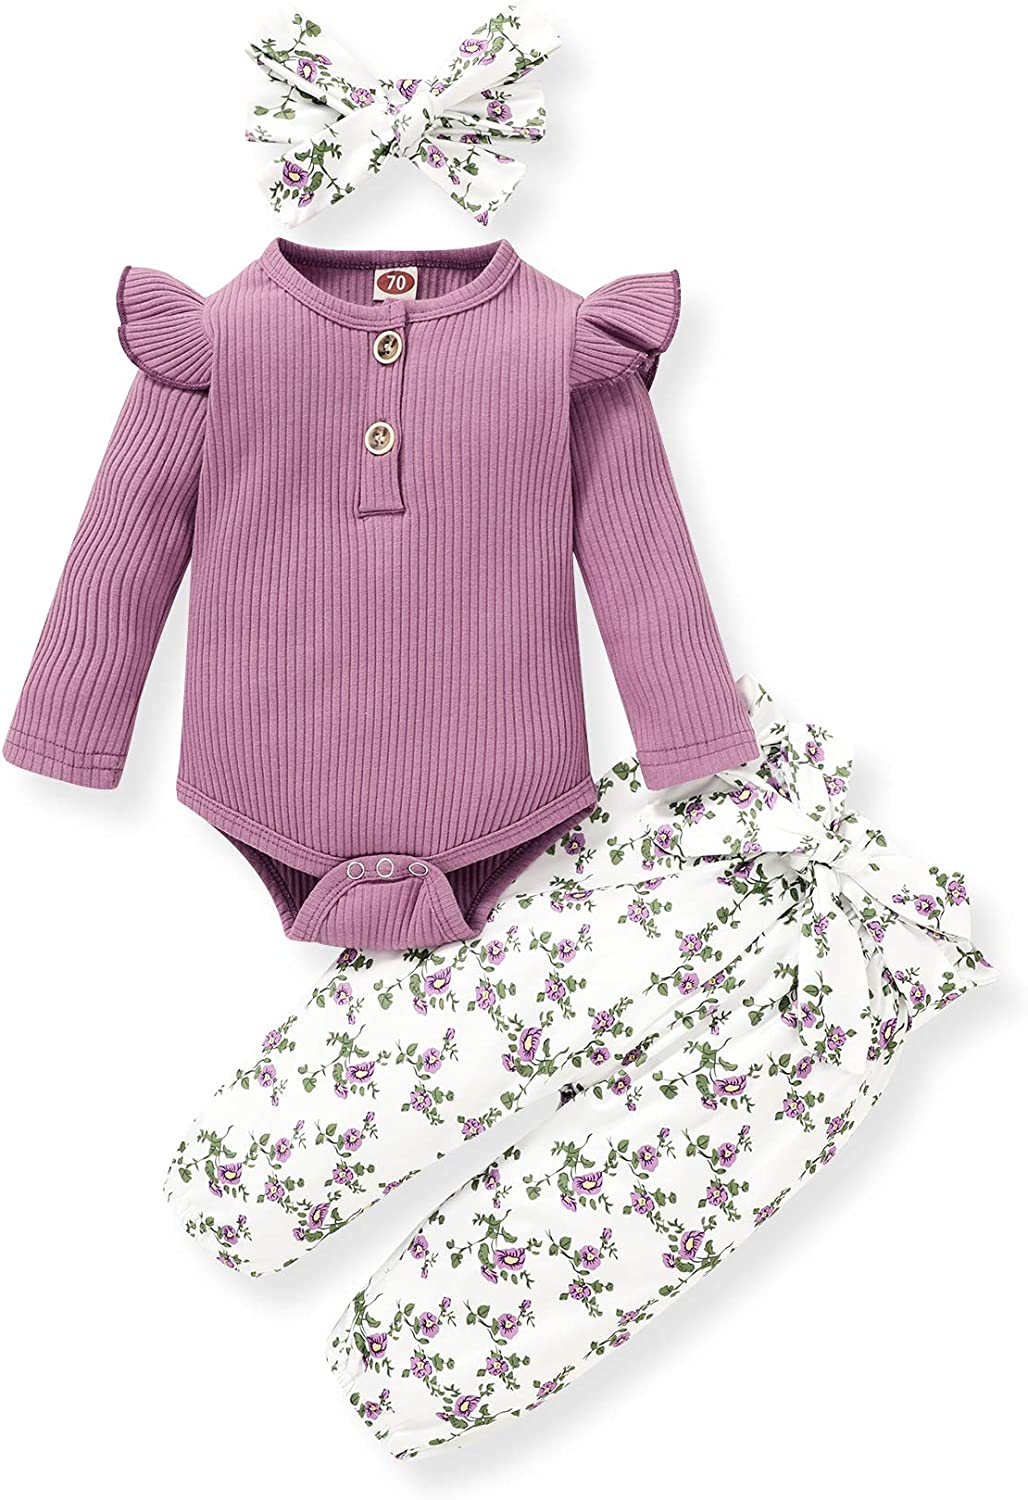 Newborn Baby Girls Great interest Outfits Infant Floral Ruffle wit Pants Romper Recommended